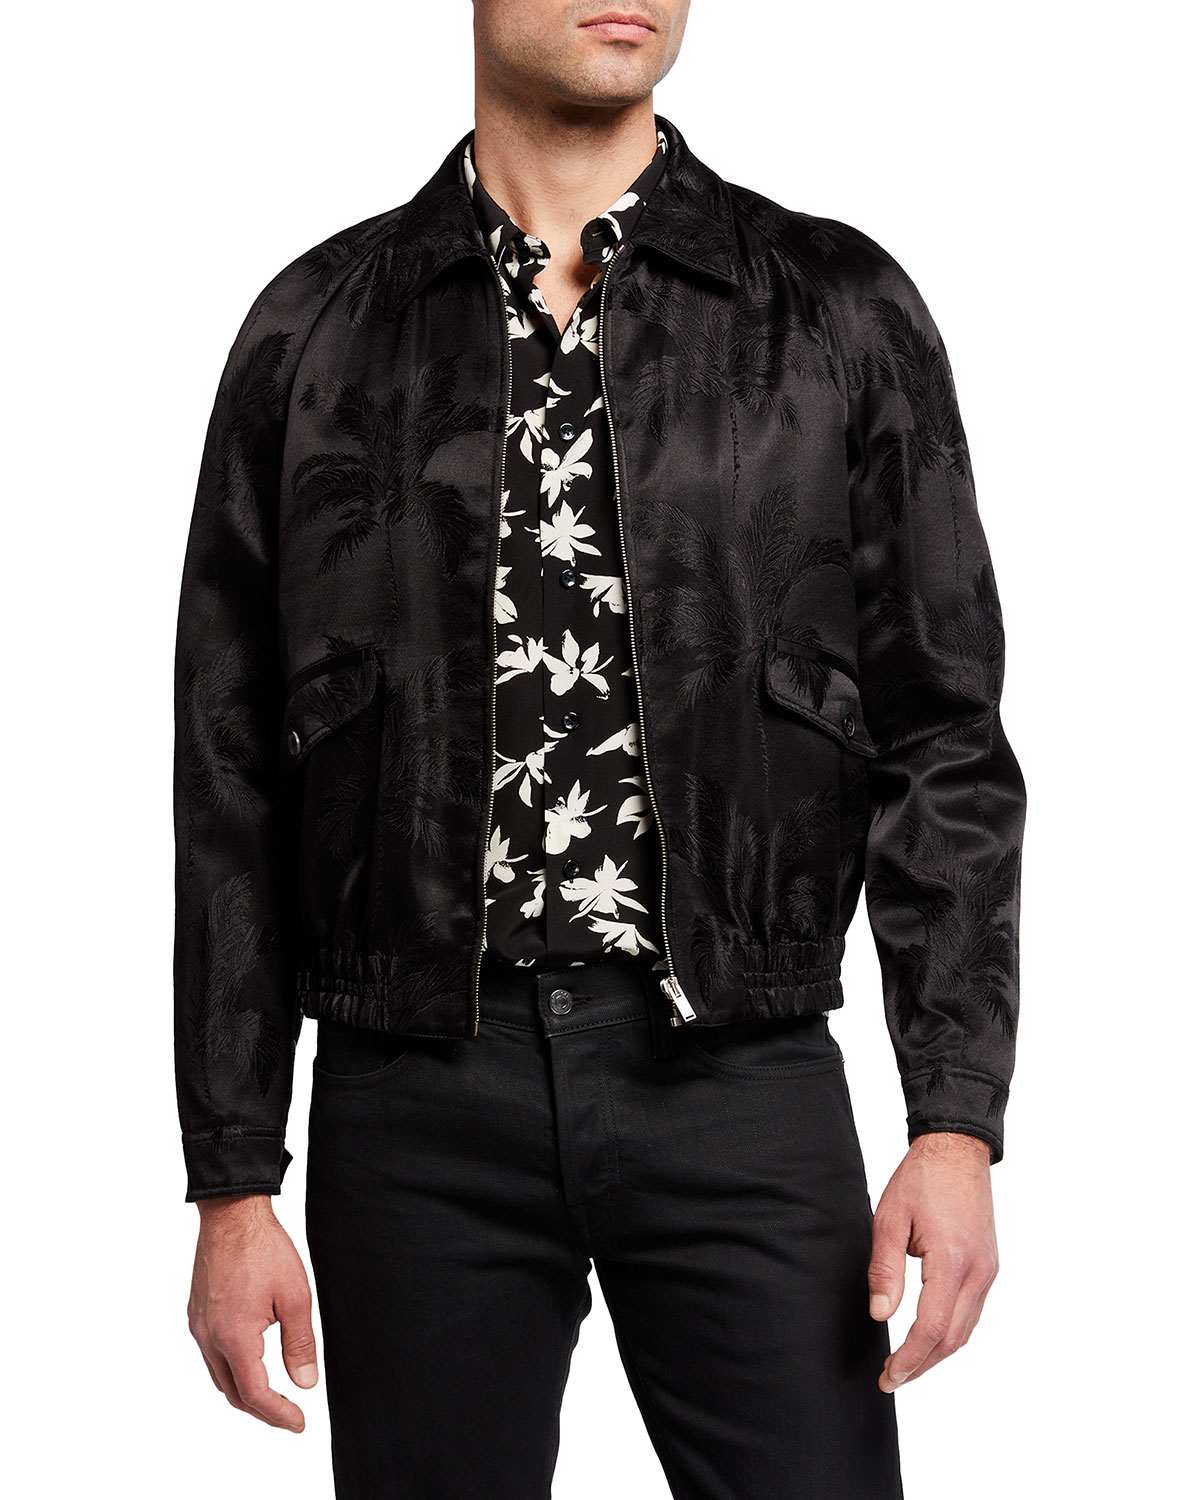 Saint Laurent MEN'S SATIN JACQUARD TEDDY JACKET